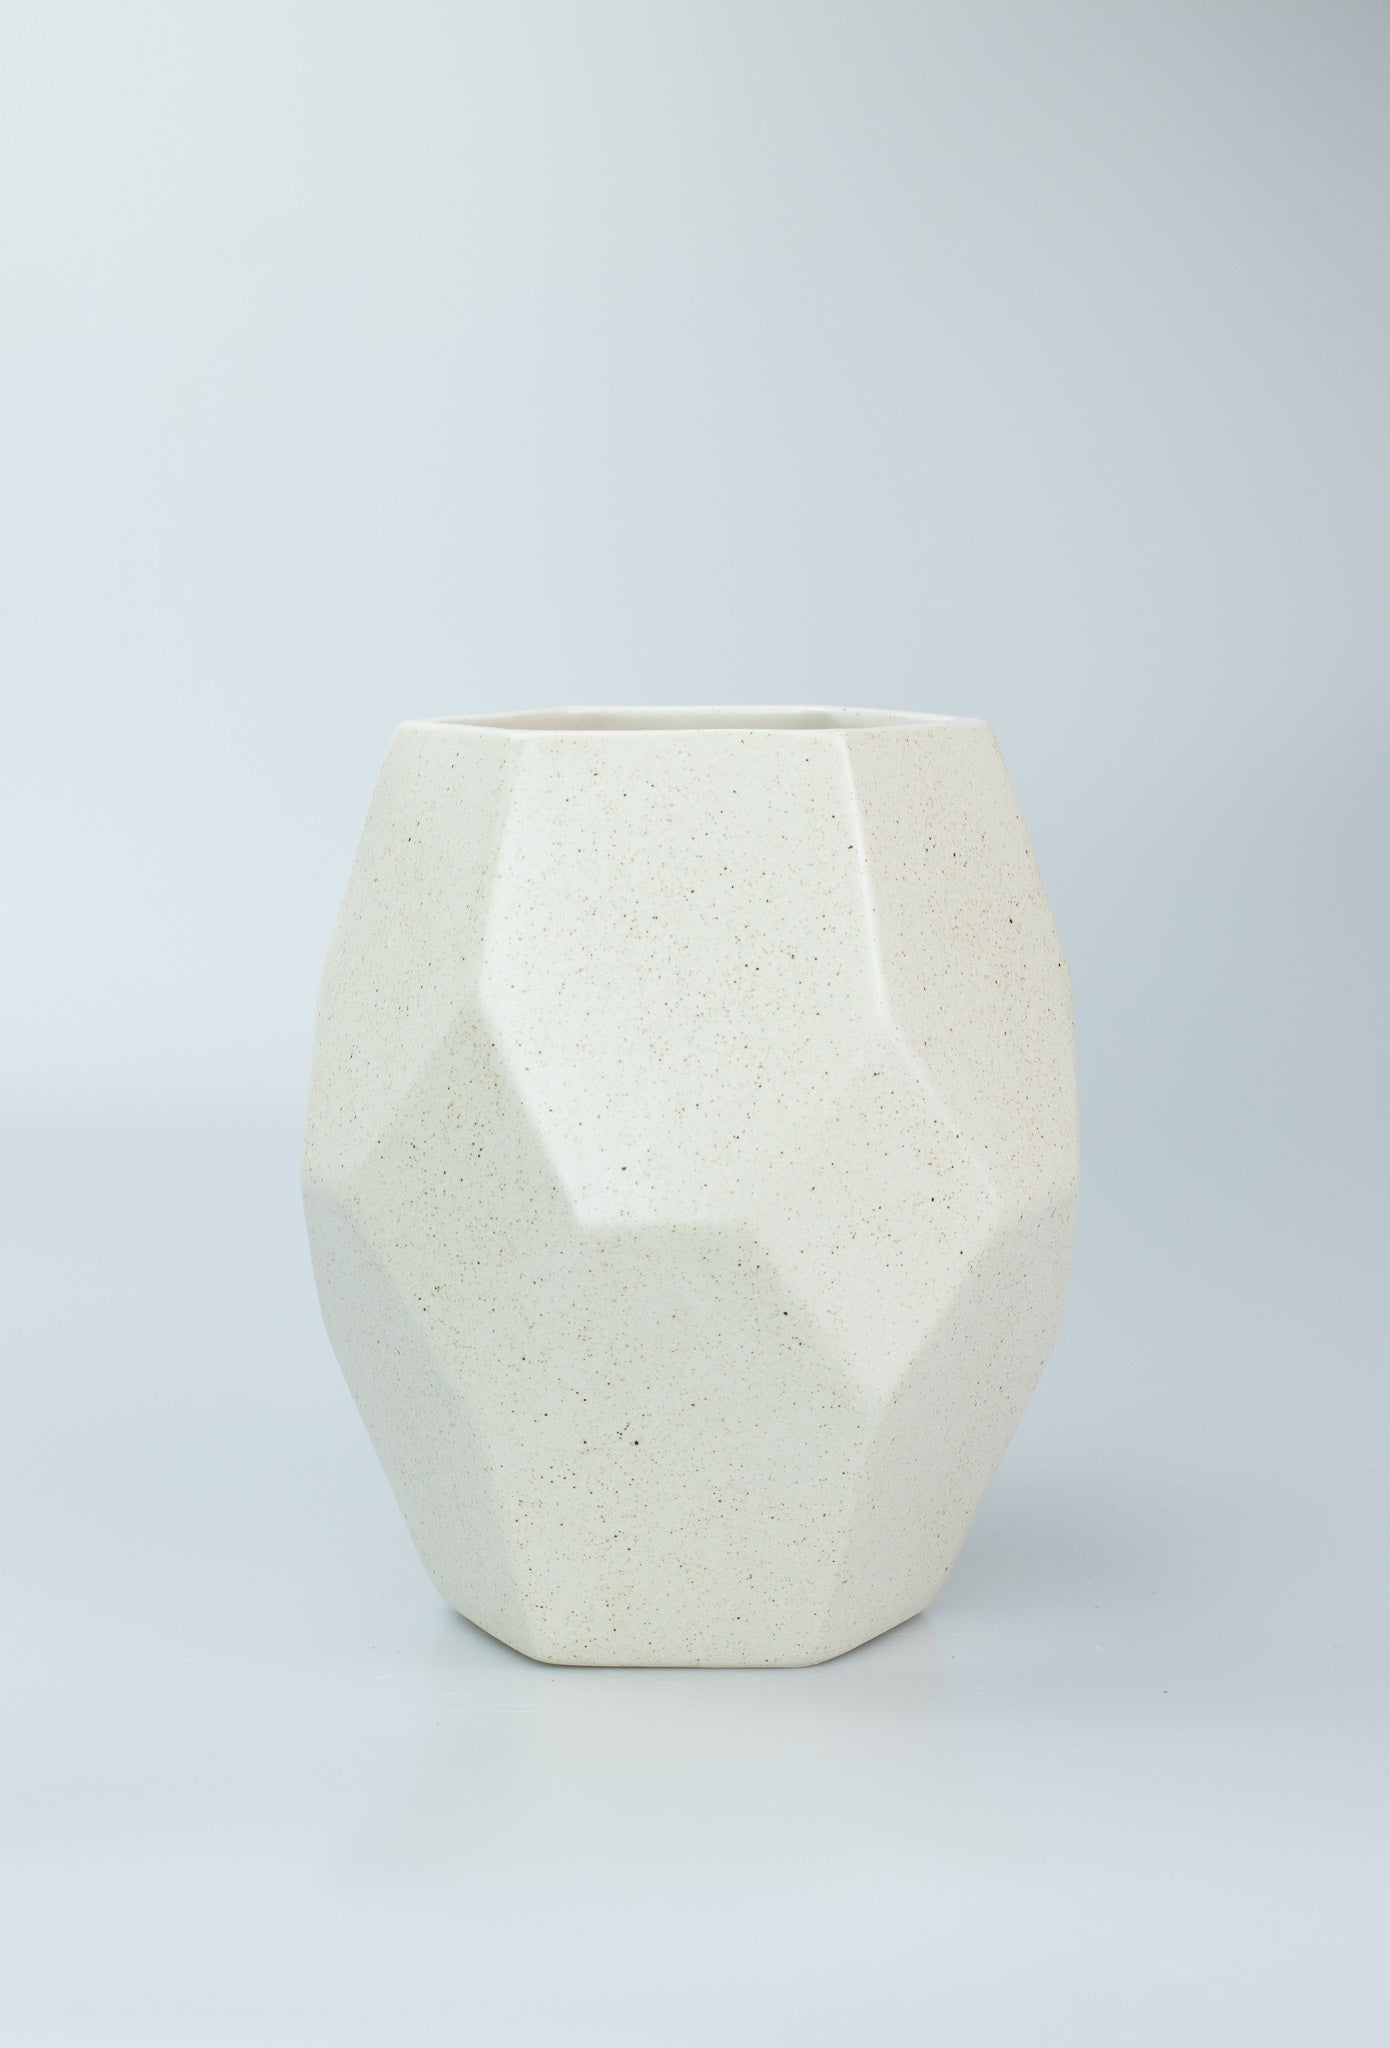 Hexagonal Ceramic Vase